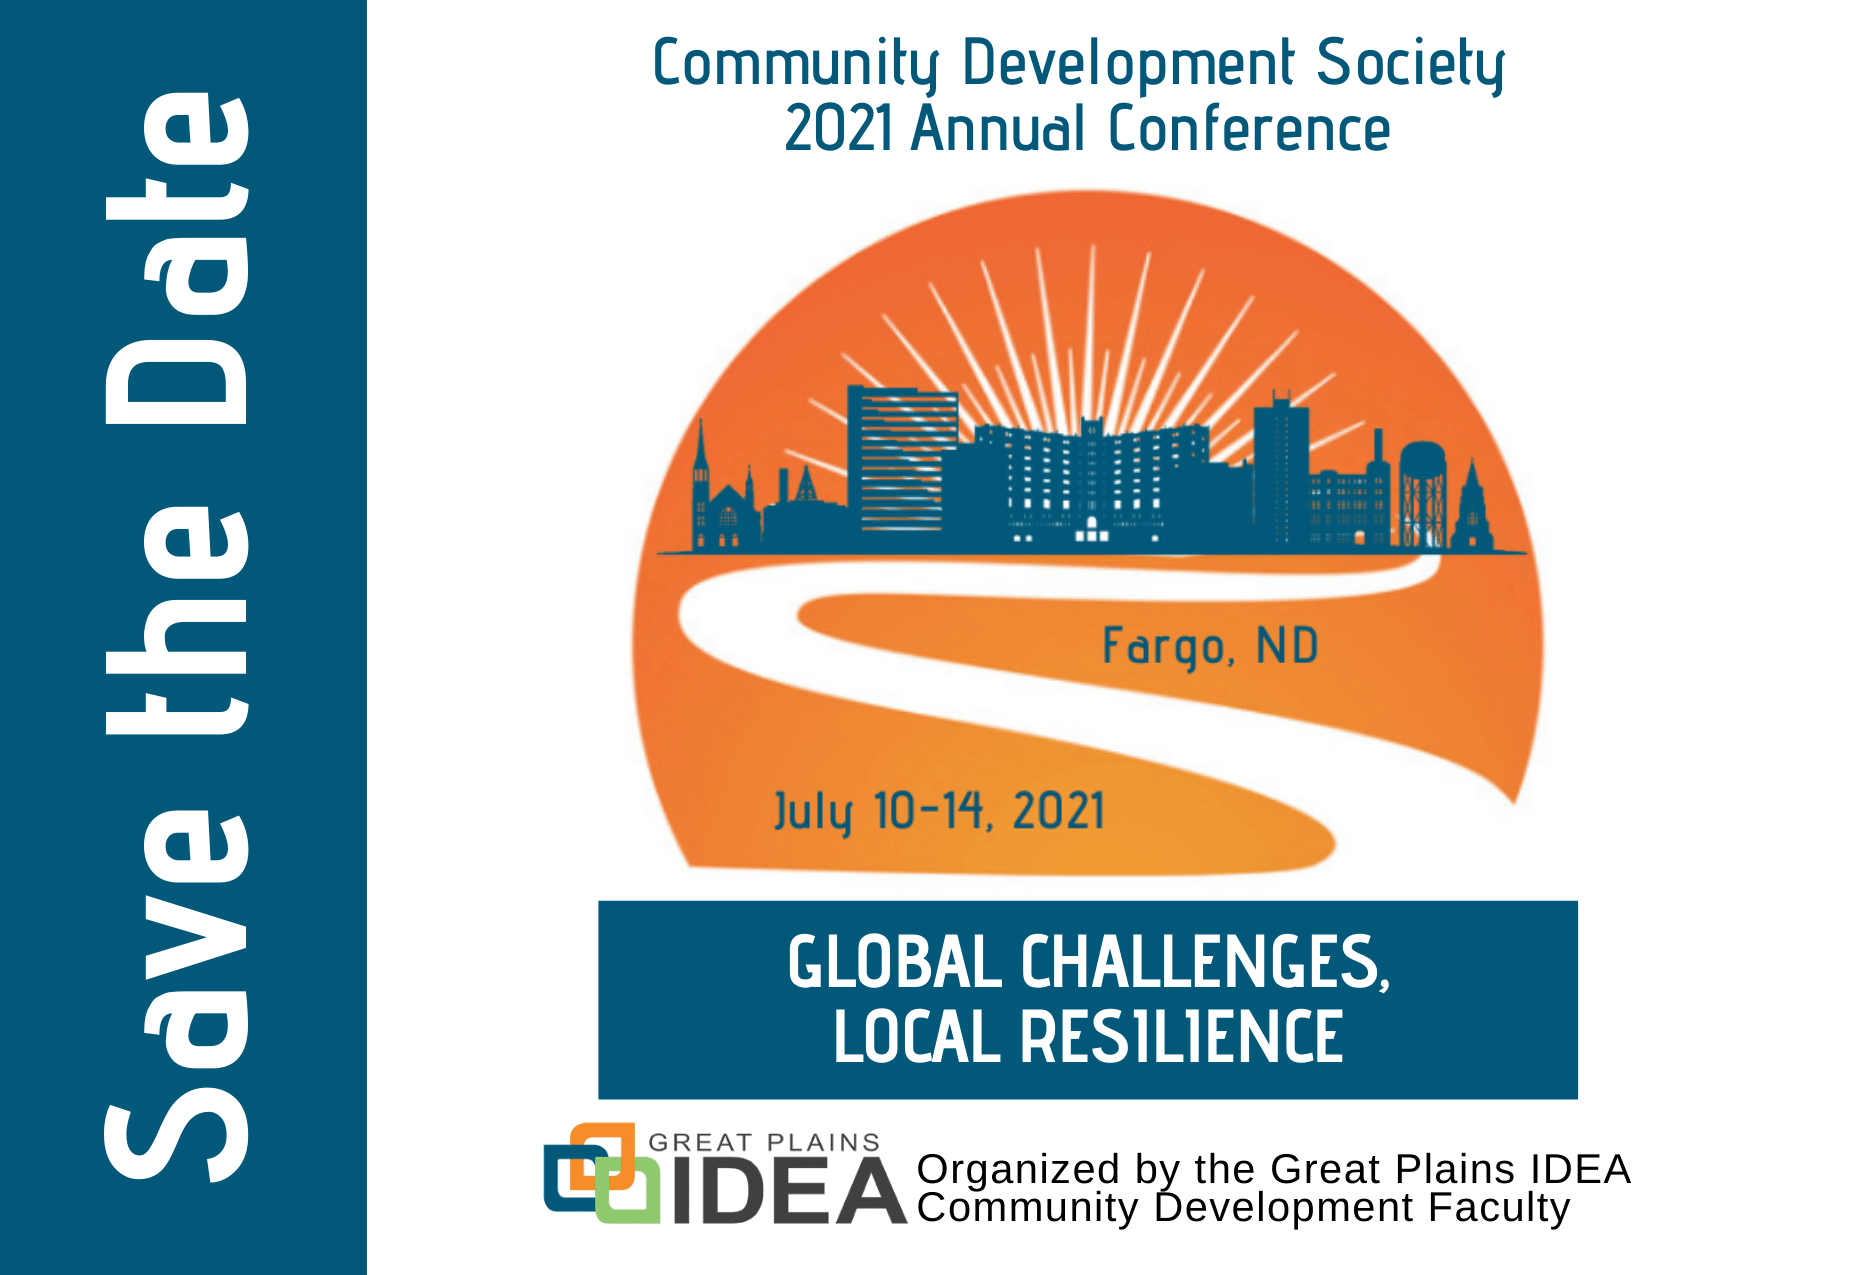 Save the Date graphic for the 2021 CDS Annual Conference in Fargo, ND, July 10-14, 2021. Conference theme is Global Challenges, Local Resilience.